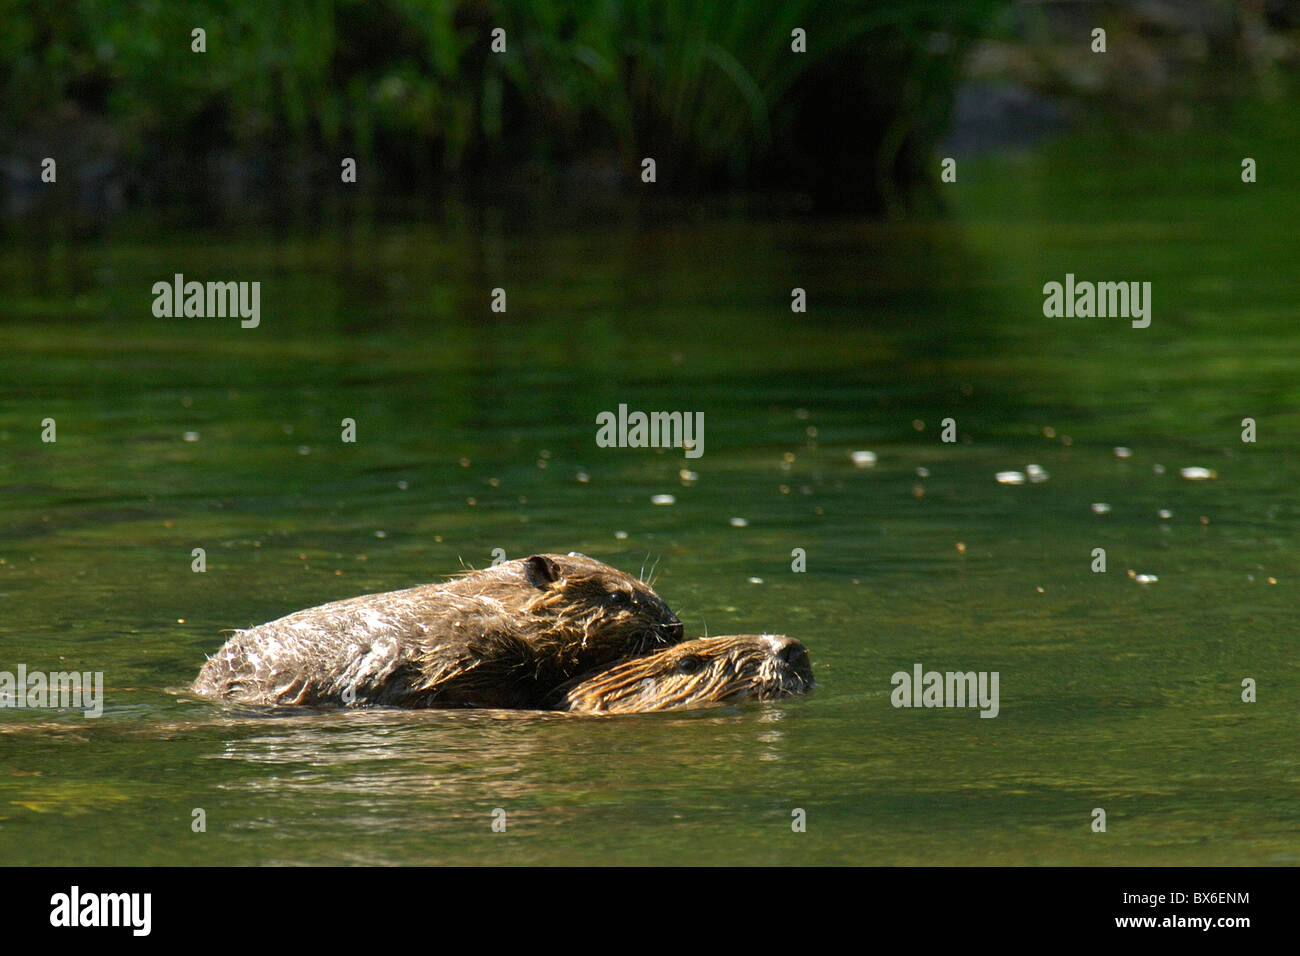 Beaver (Castor canadensis), adult with young beaver riding on adult's back Stock Photo